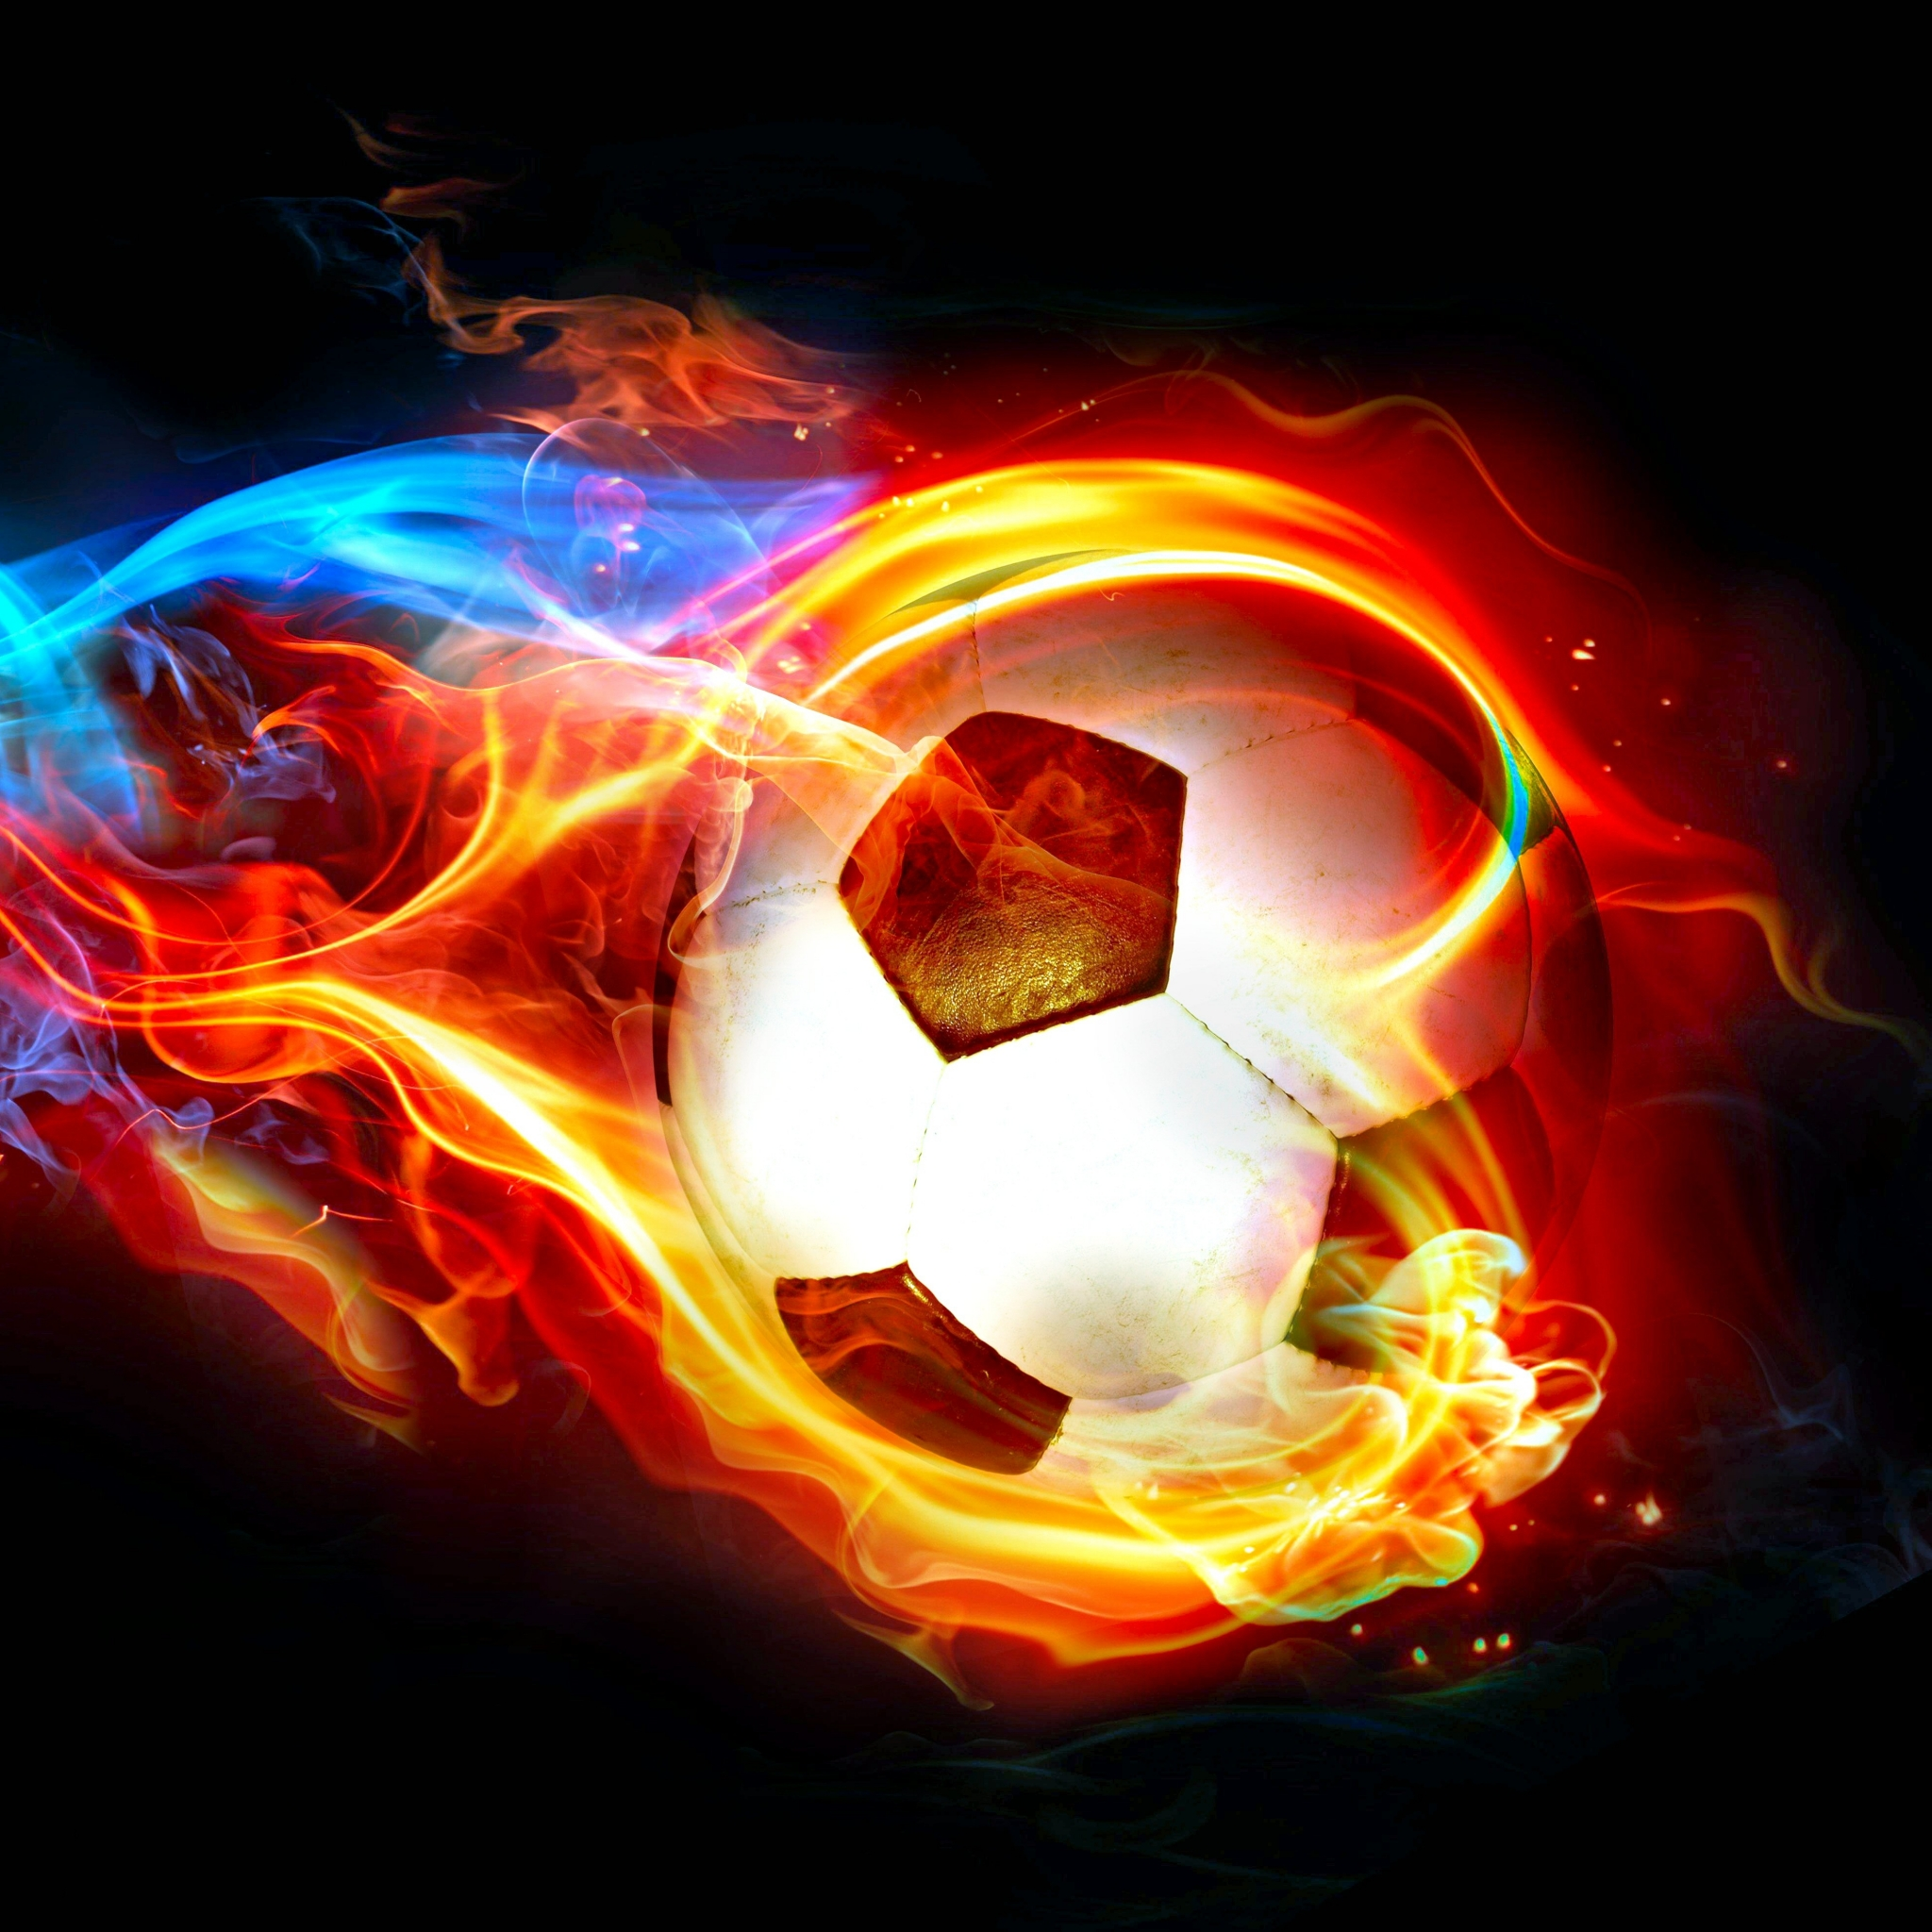 ABSTRACT 06 Great Ball Of Fire 13june2014friday 121536 VersionOne BRAZIL2014 Sports Soccer 2048x2048 Mobile Wallpaper